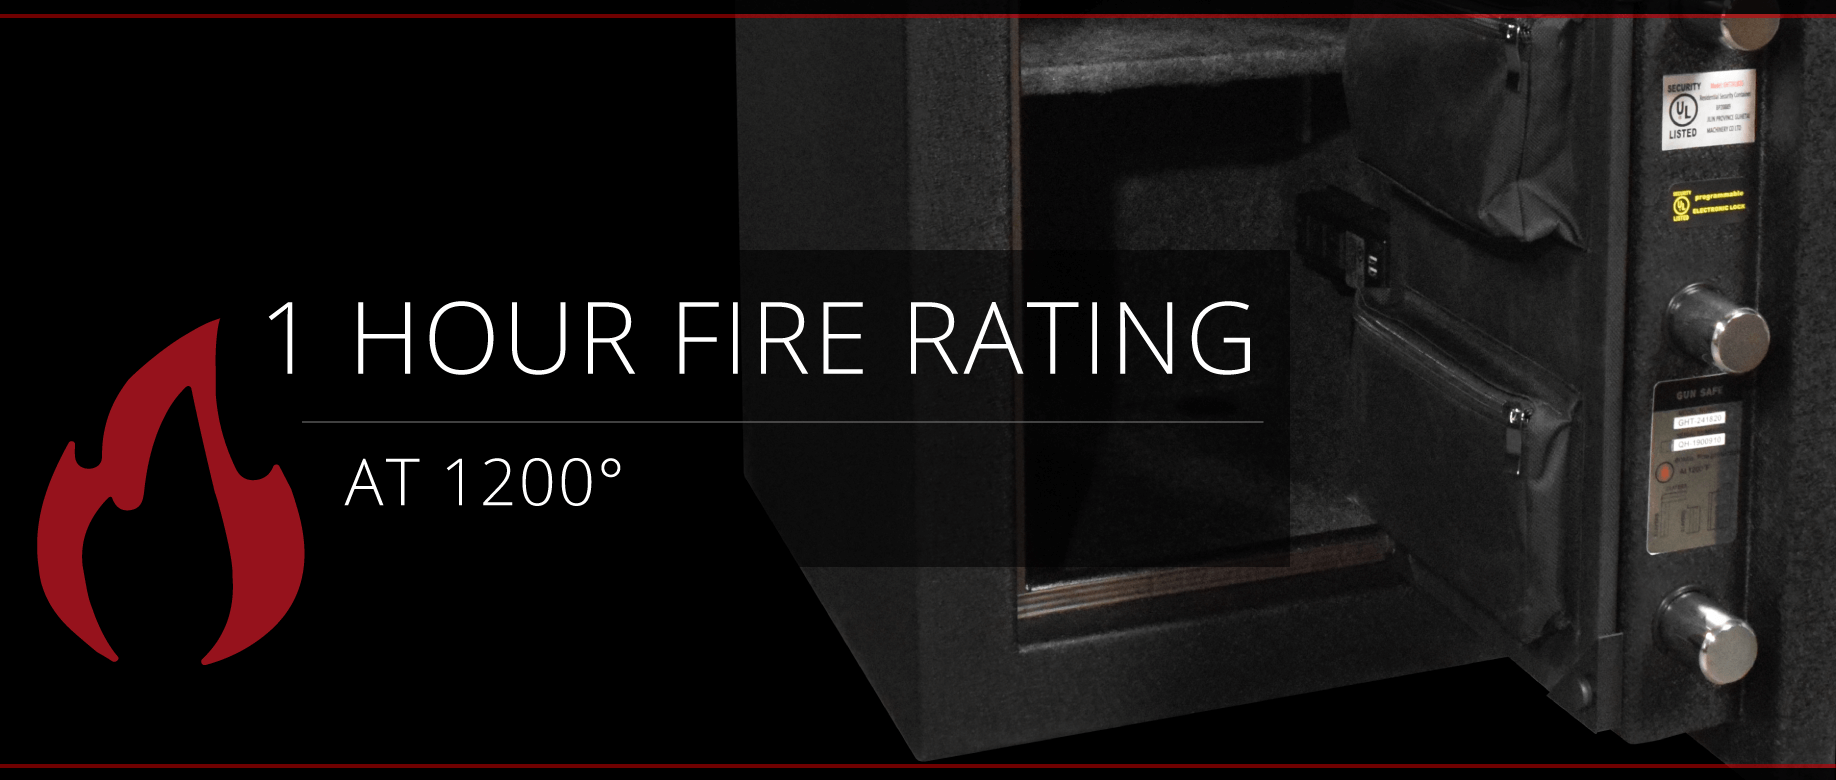 Stealth HS4 UL Home Safe 1 Hour Fire Rating